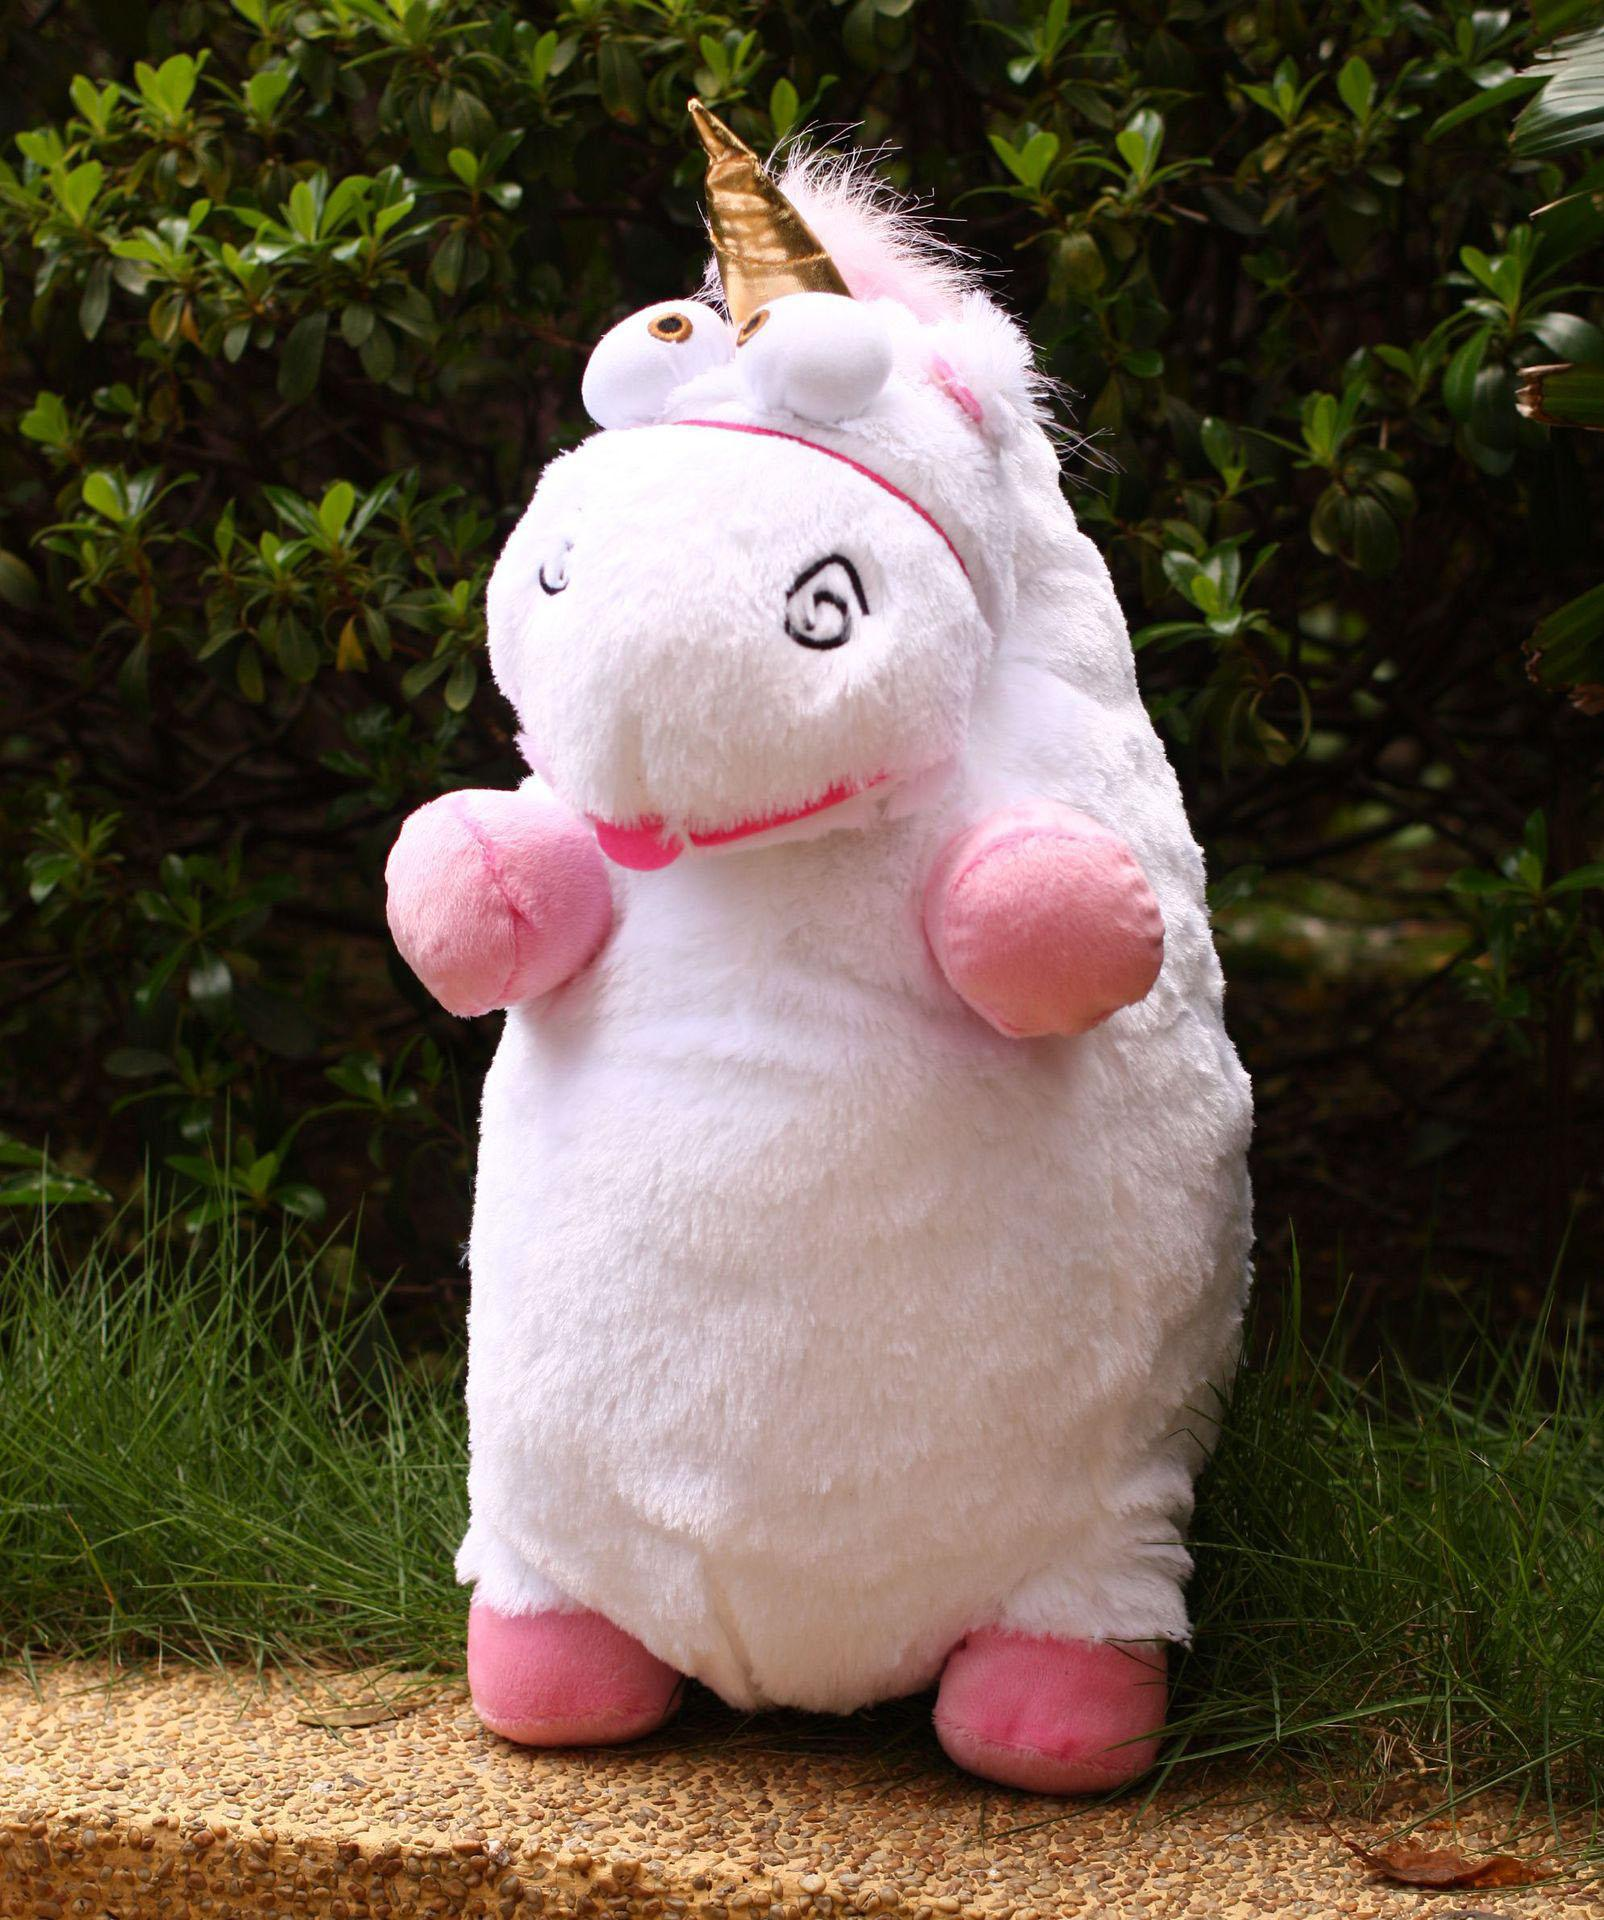 Despicable Me Fluffy Unicorn Plush Pillow Toy Doll Big 22 Inch Fluffy Figure Gift Free Shipping